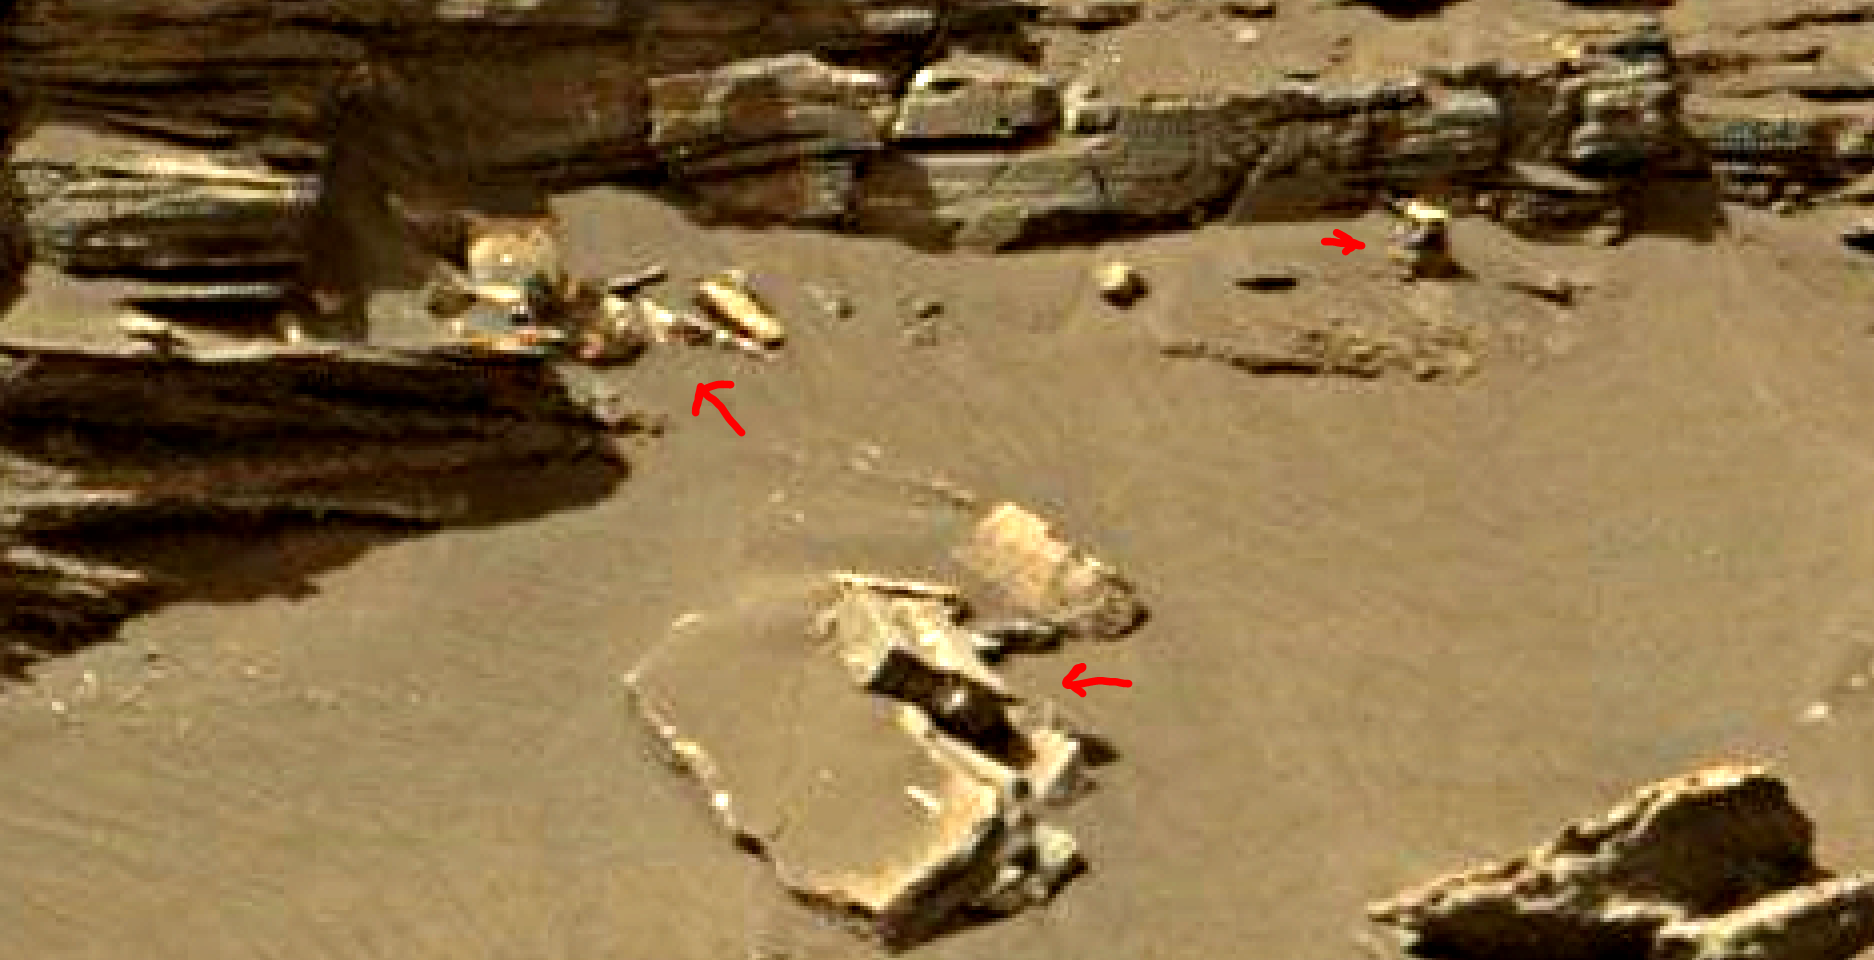 mars-sol-1454-anomaly-artifacts-4a-was-life-on-mars